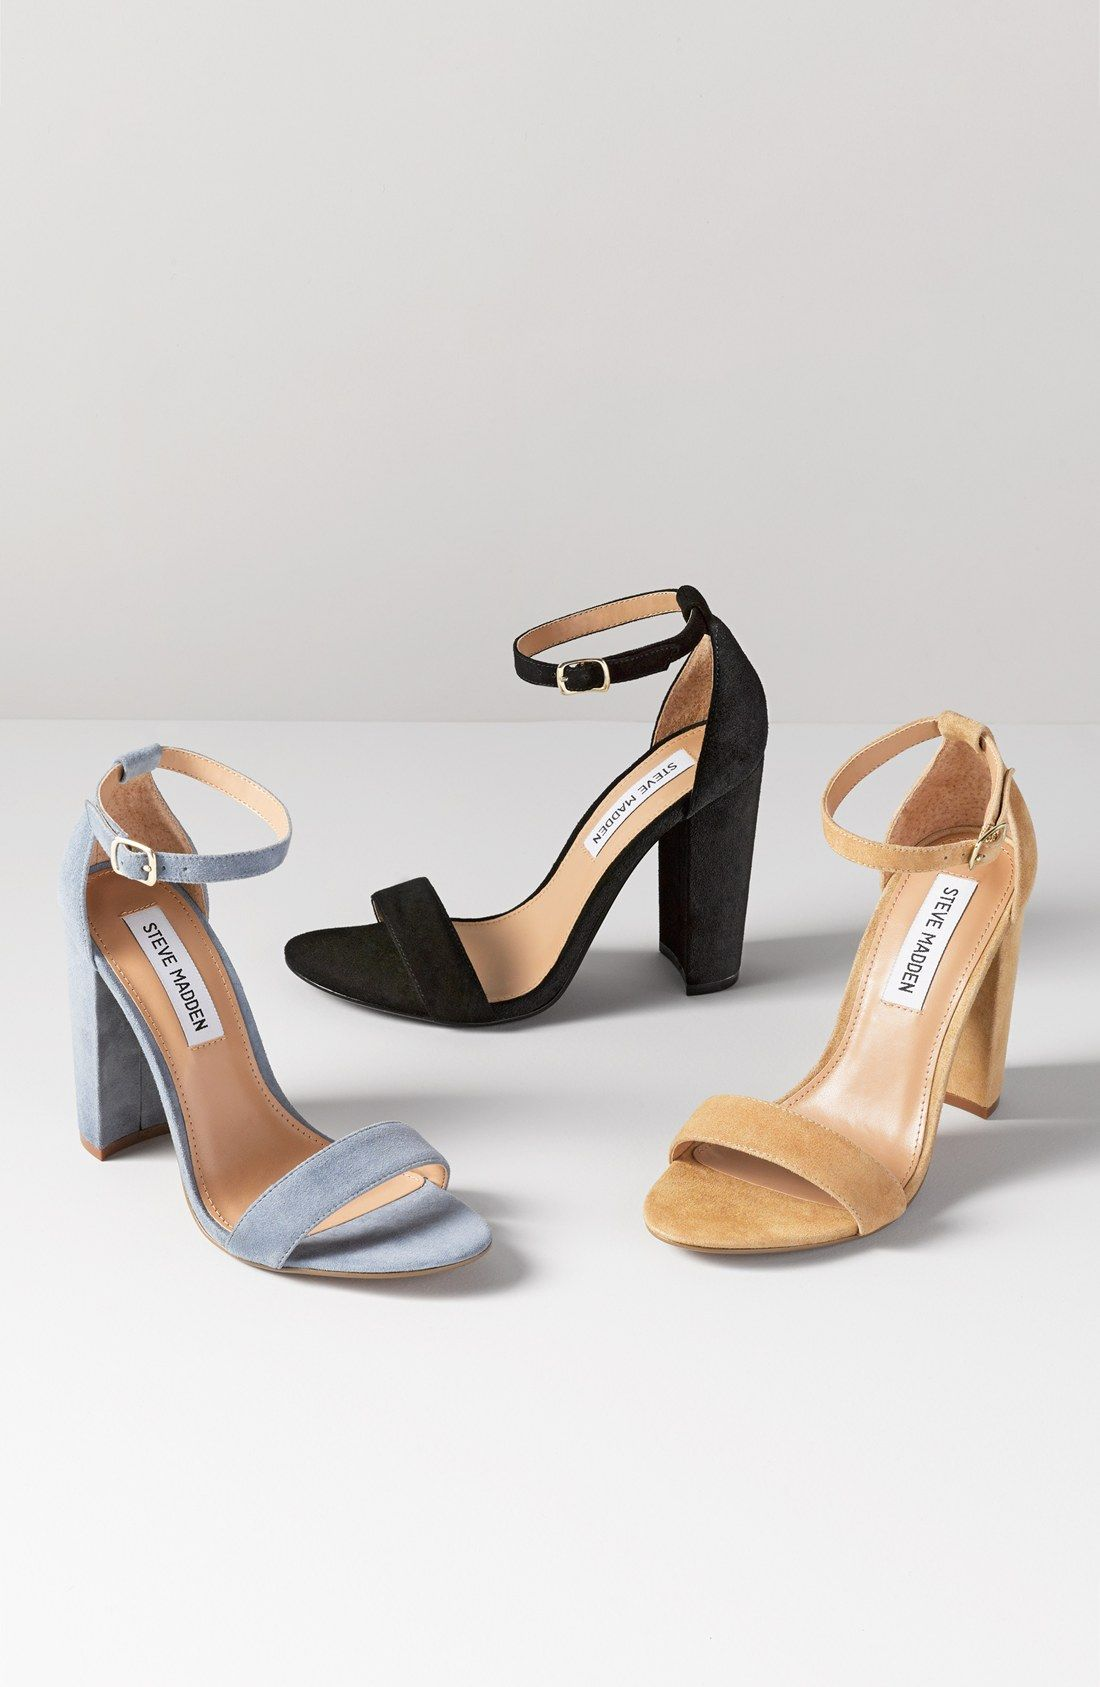 The Steve Madden Carrson sandals are SO much more comfortable and stable  than the Steve Madden Stecy (Stuart Weitzman…